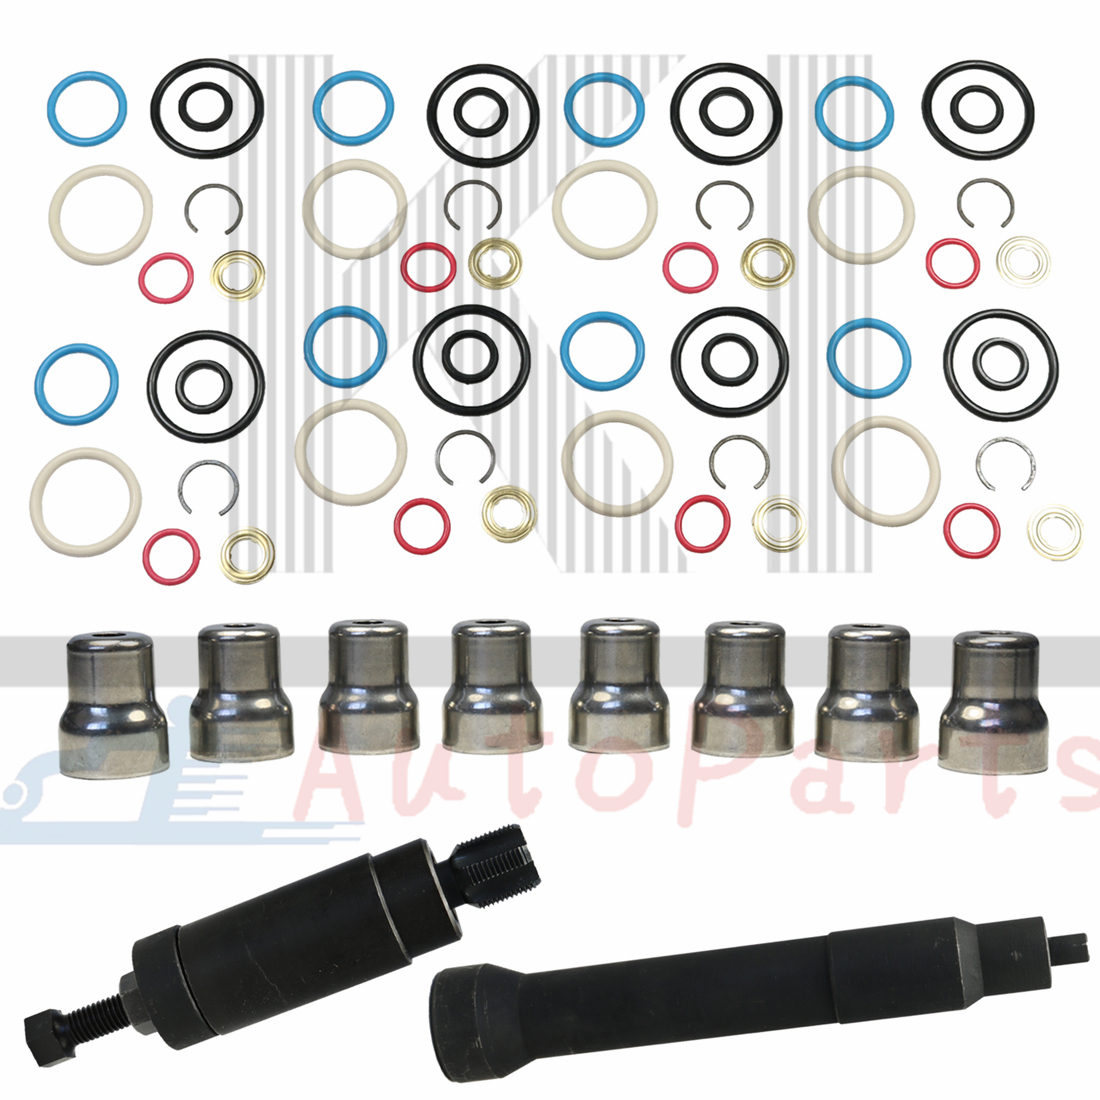 2003-2010 NEW 6.0L INJECTOR SLEEVE CUP SET OF 8 FOR GENUINE FORD MOTOCRAFT